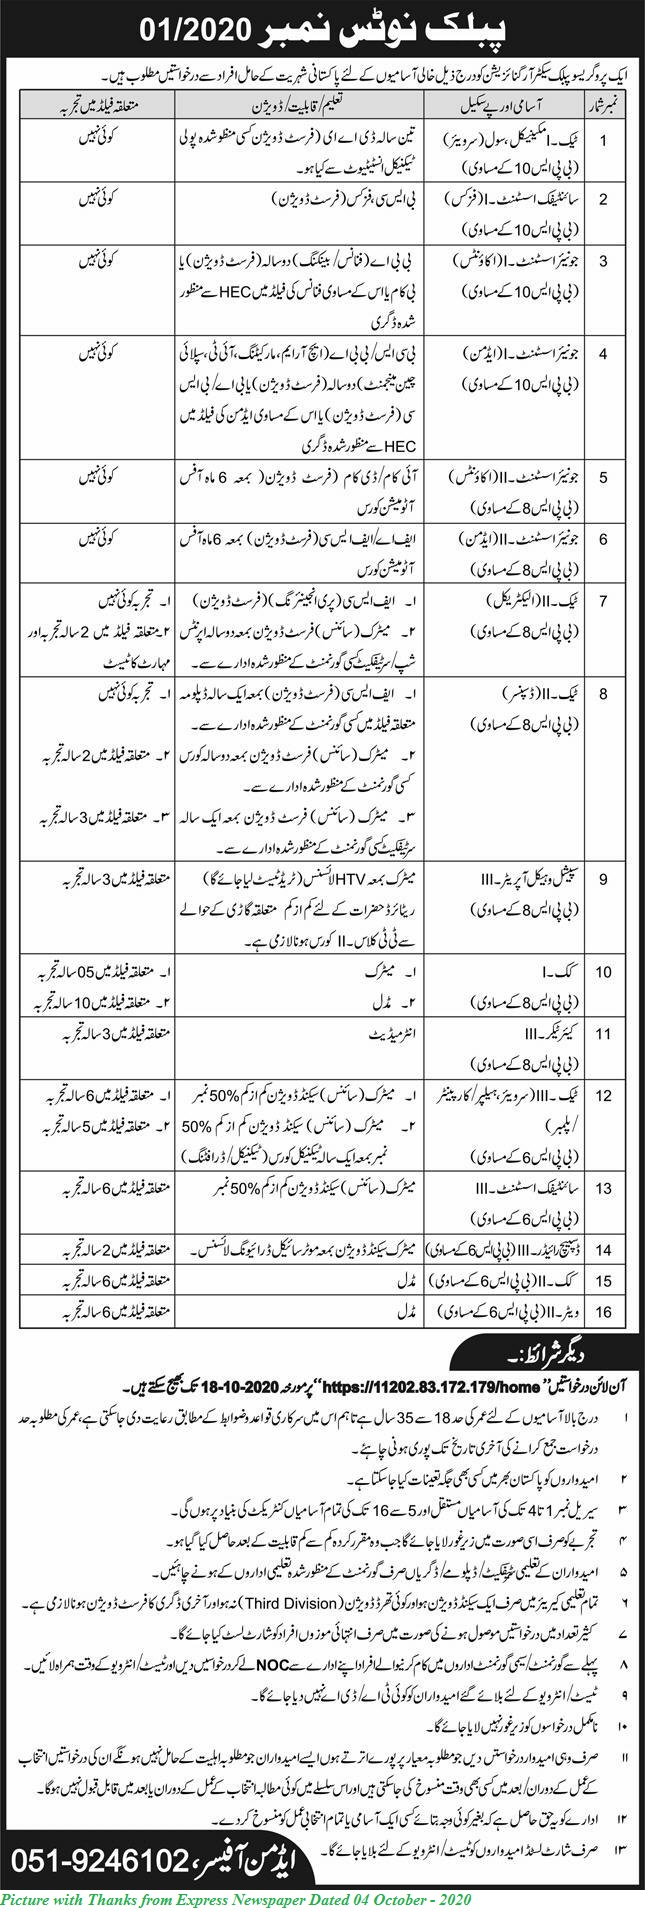 Progressive Public Sector Organization Jobs 2020 - Latest Jobs in Atomic Energy Commission Apply Online for Latest Atomic Energy Jobs October 2020